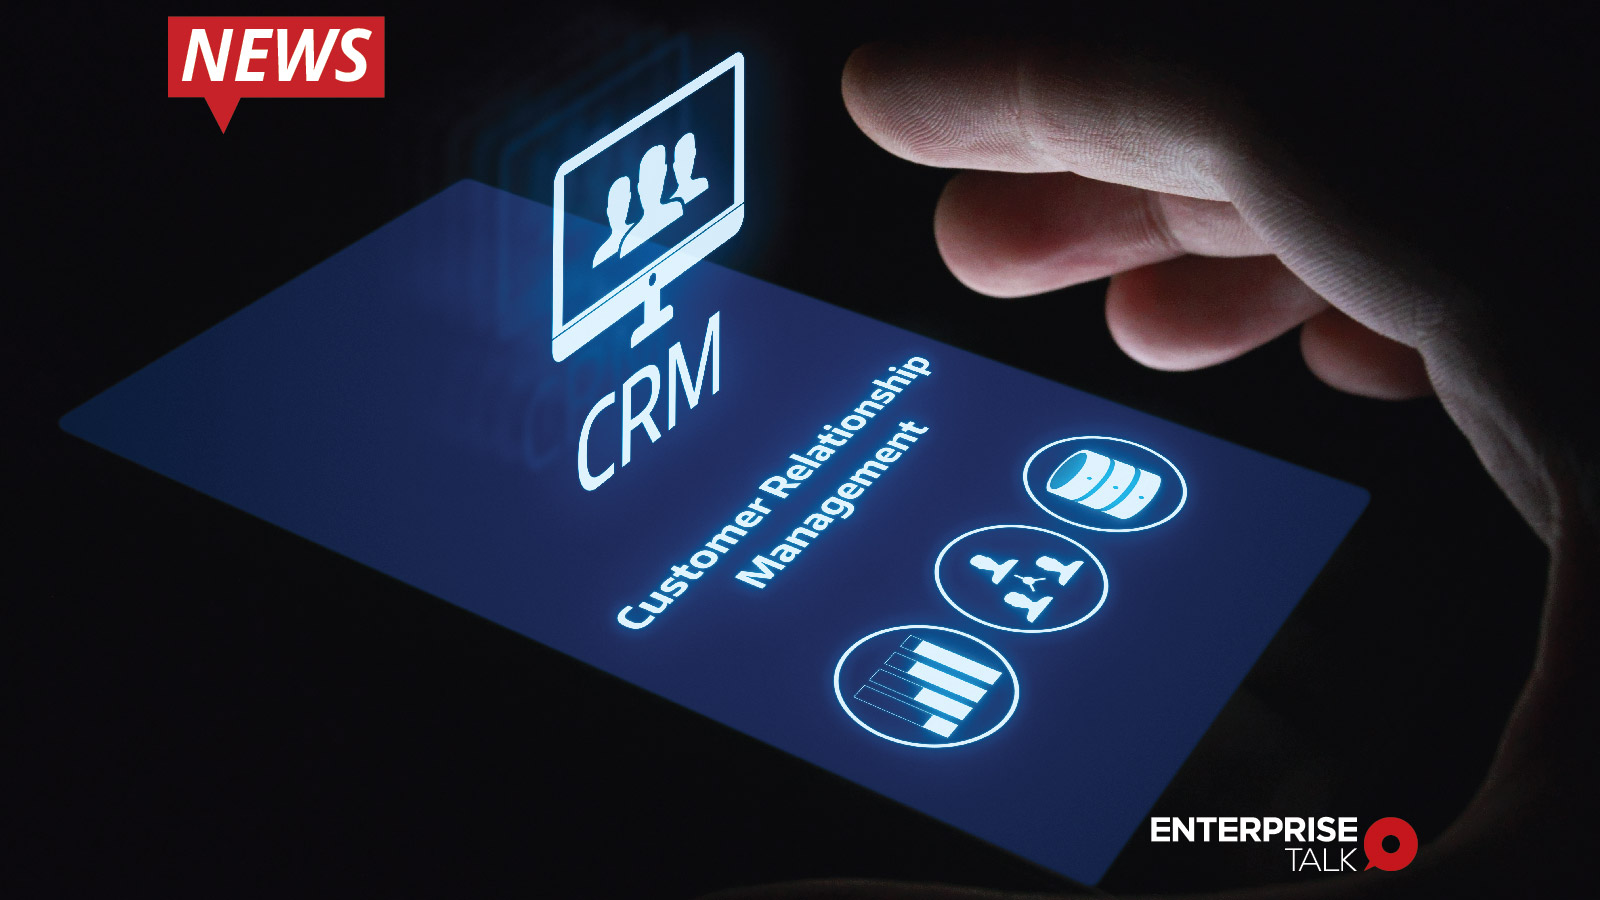 Aviso, AI-Guided Sales Platform, B2B CRM Software, #NoCRM, artificial intelligence, Aviso's 2.0